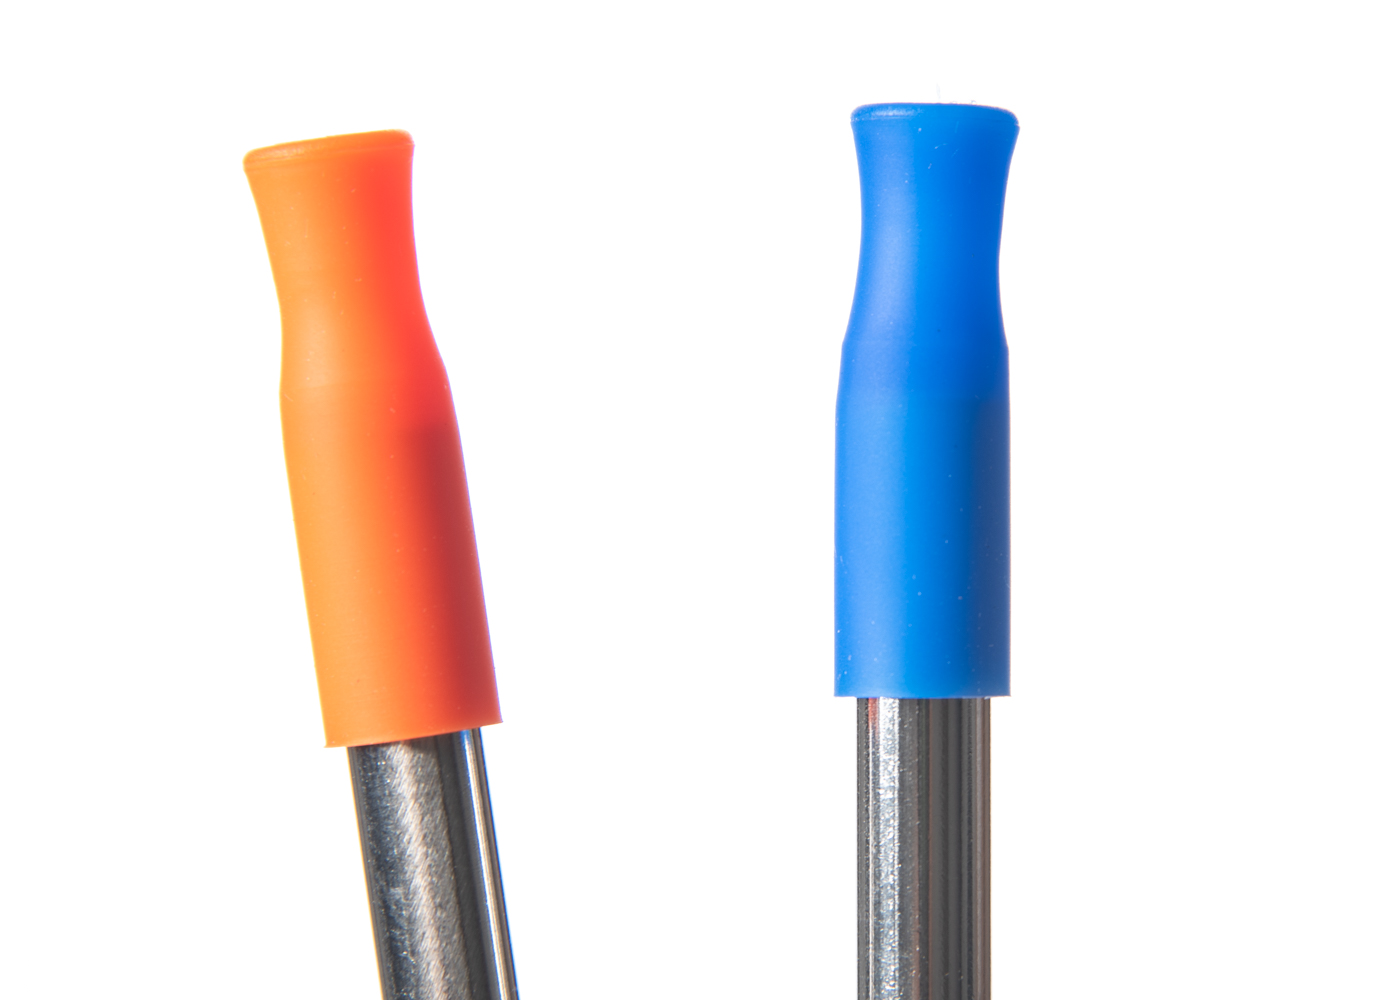 8MM silicone tips for stainless steel straw